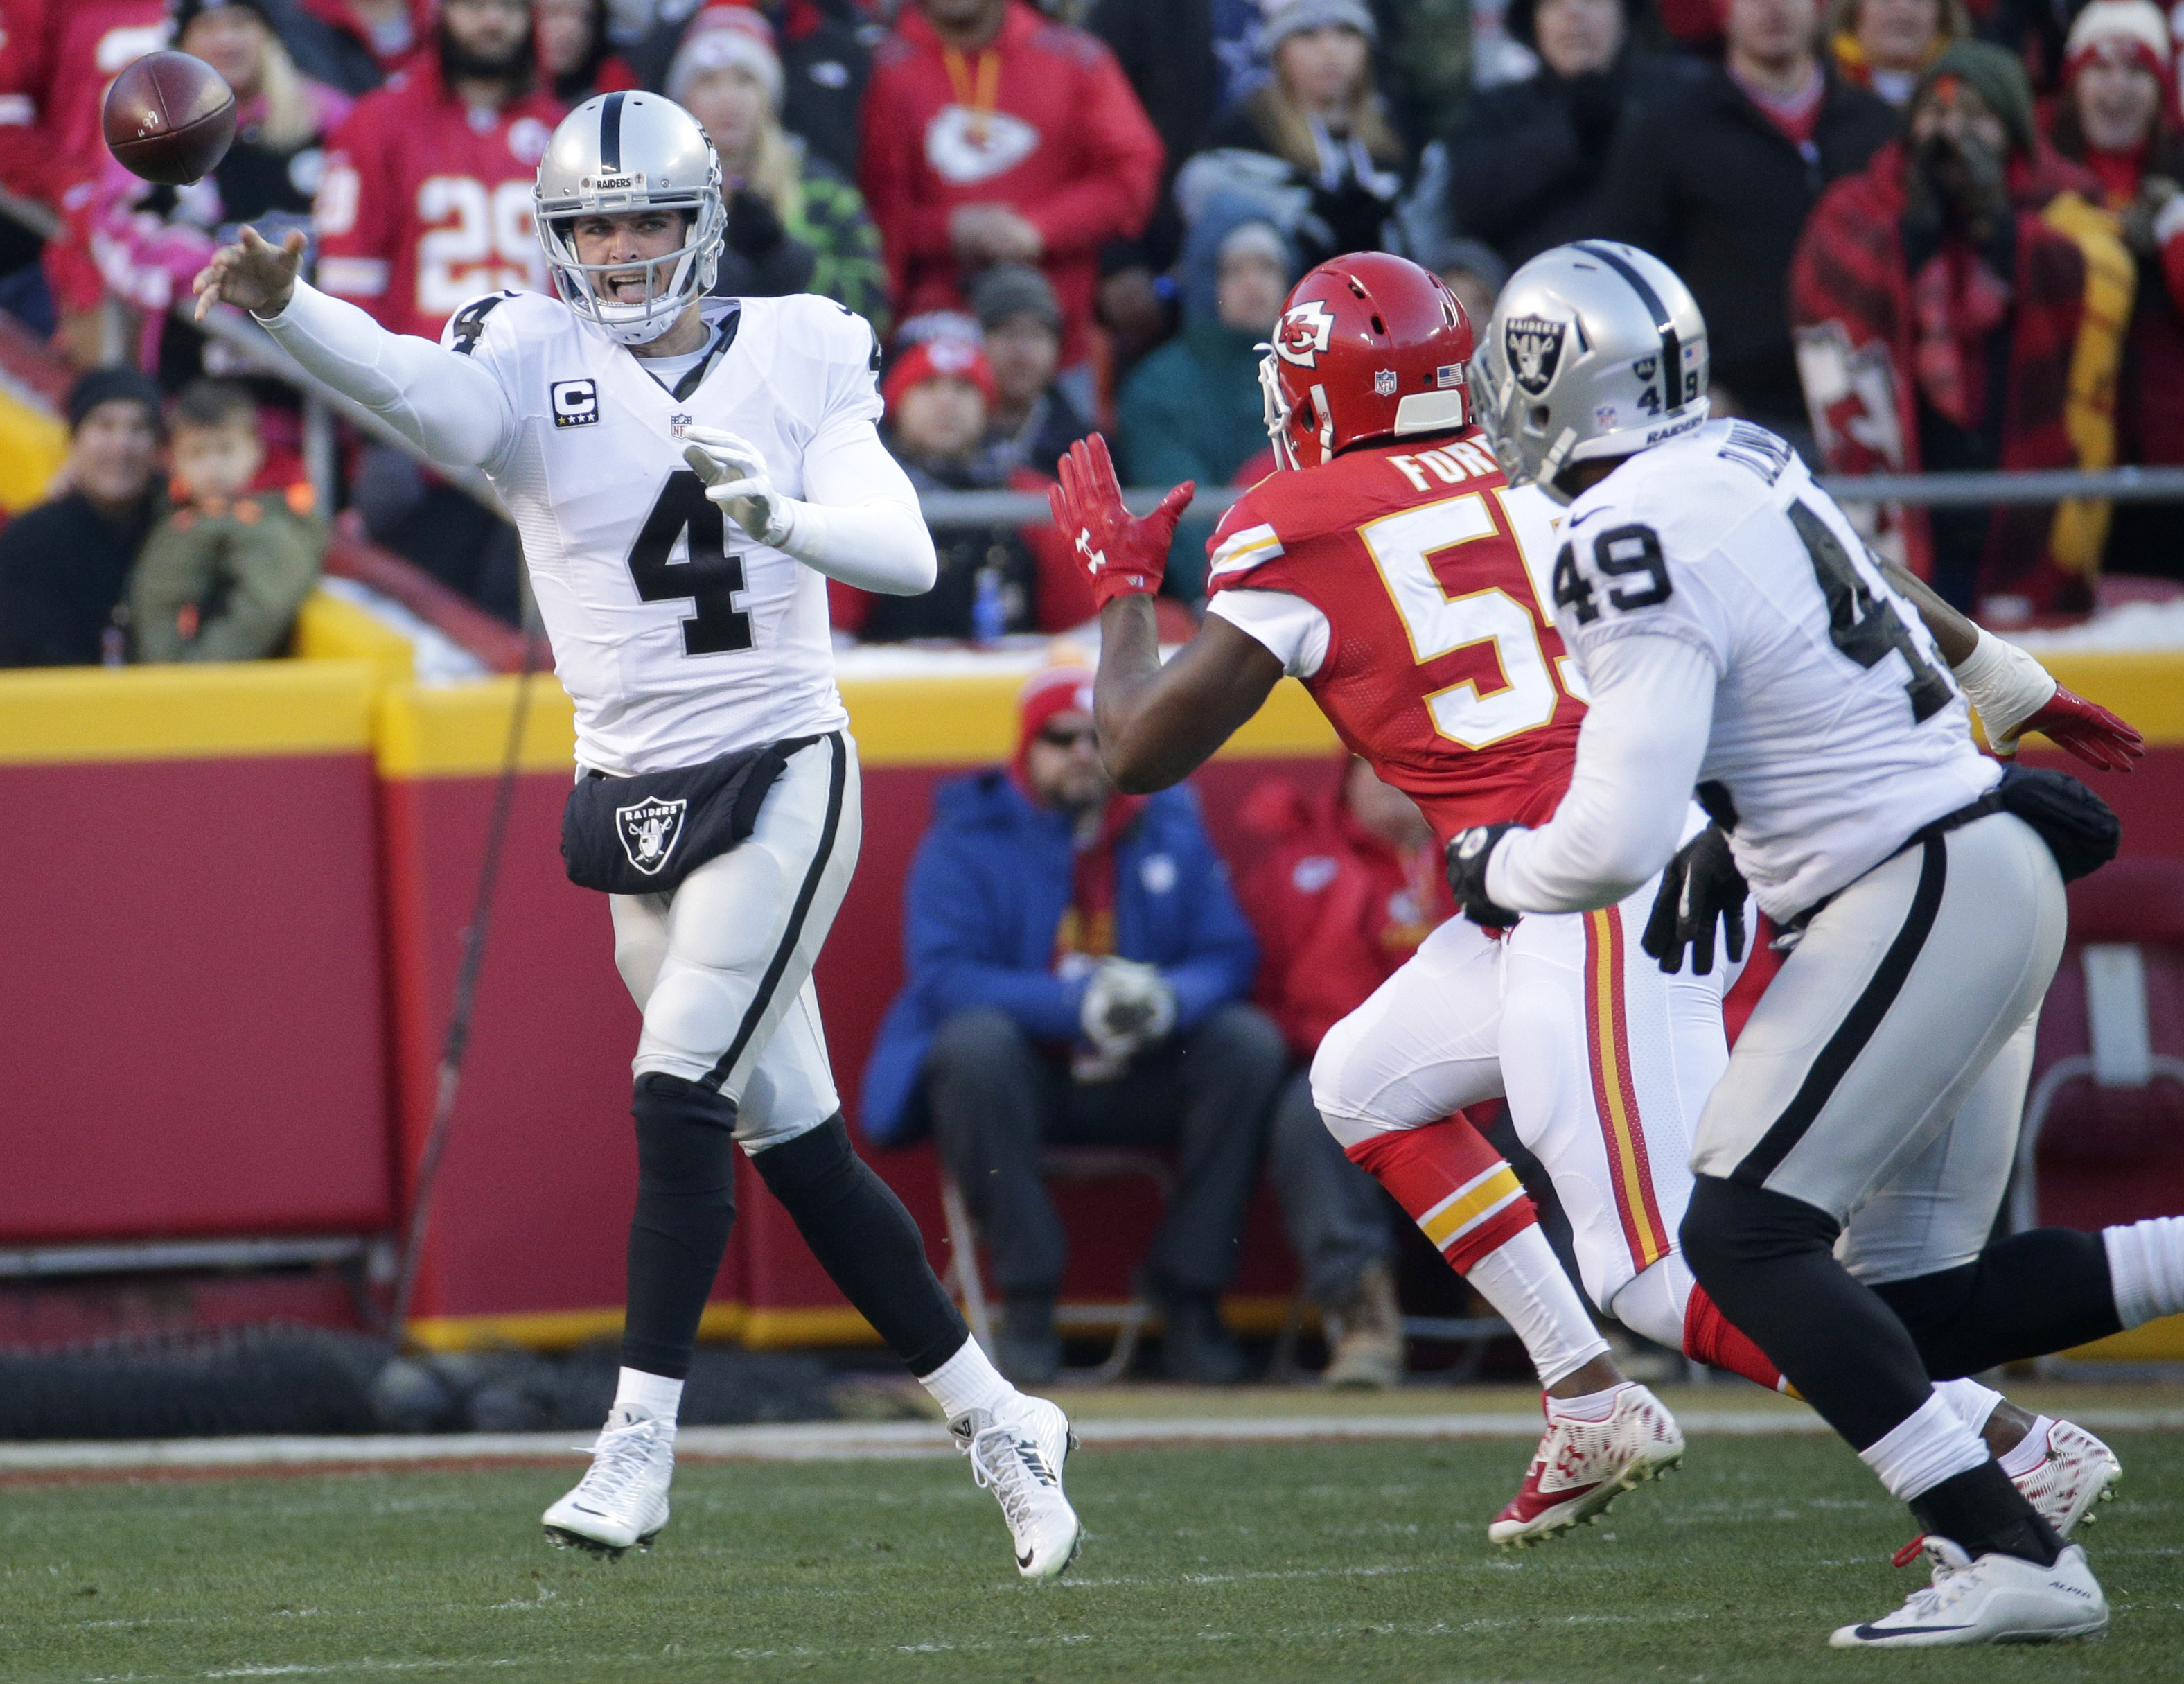 Oakland Raiders quarterback Derek Carr (4) throws under pressure from Kansas City Chiefs linebacker Dee Ford (55), with fullback Jamize Olawale (49) watching during the first half of an NFL football game in Kansas City, Mo., Sunday, Jan. 3, 2016. (AP Phot